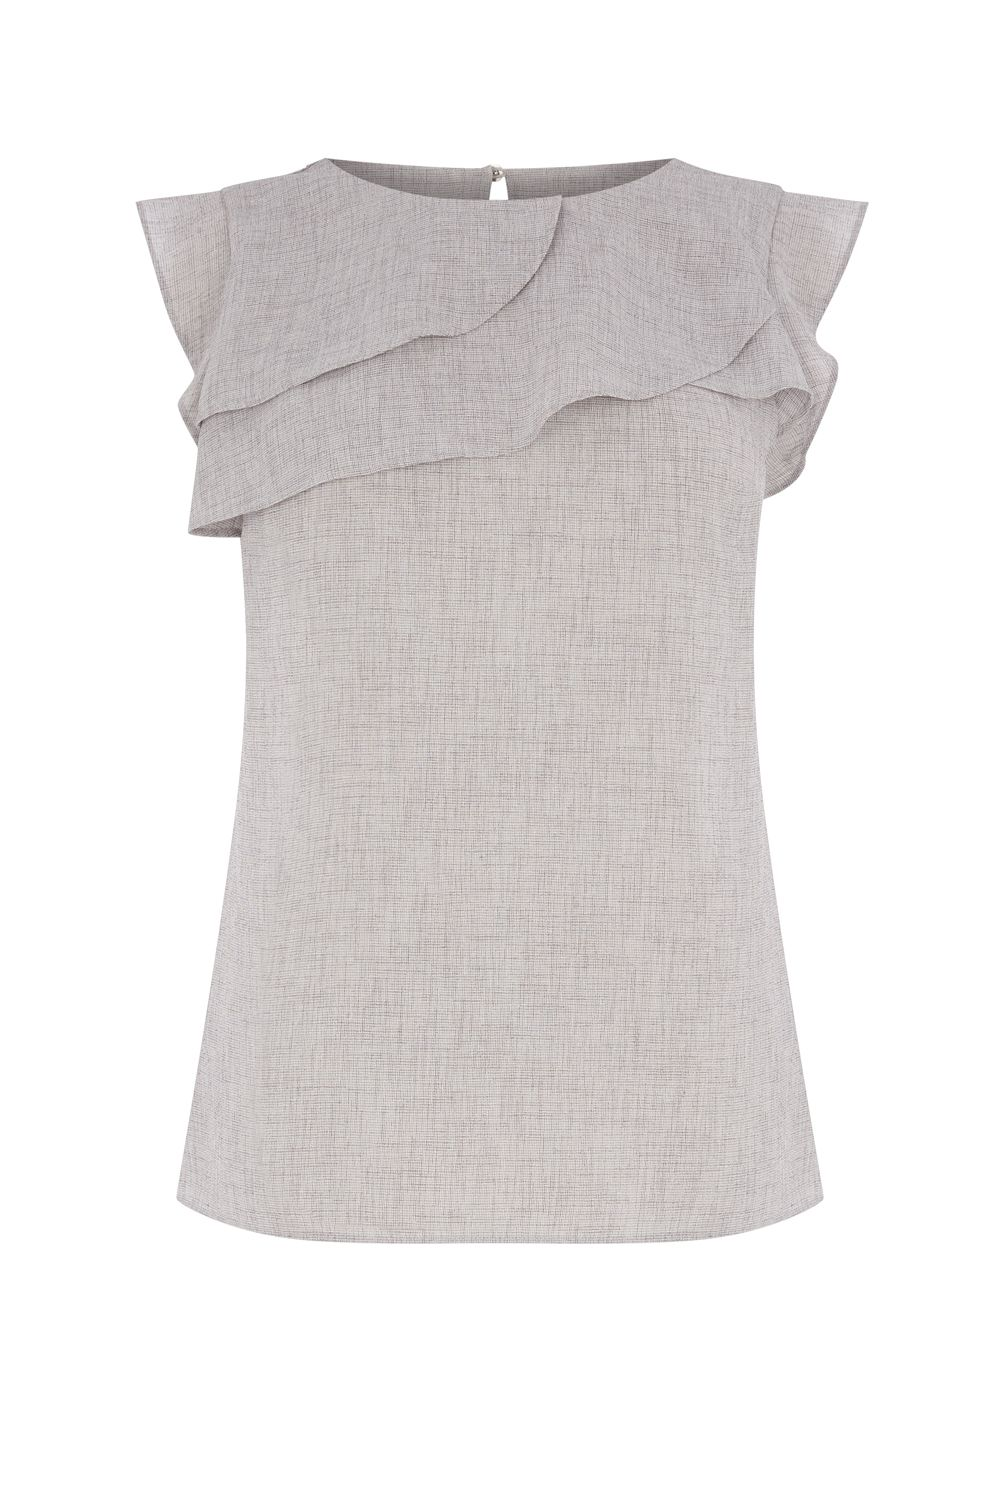 Oasis Linen Look Shell Top, Mid Grey